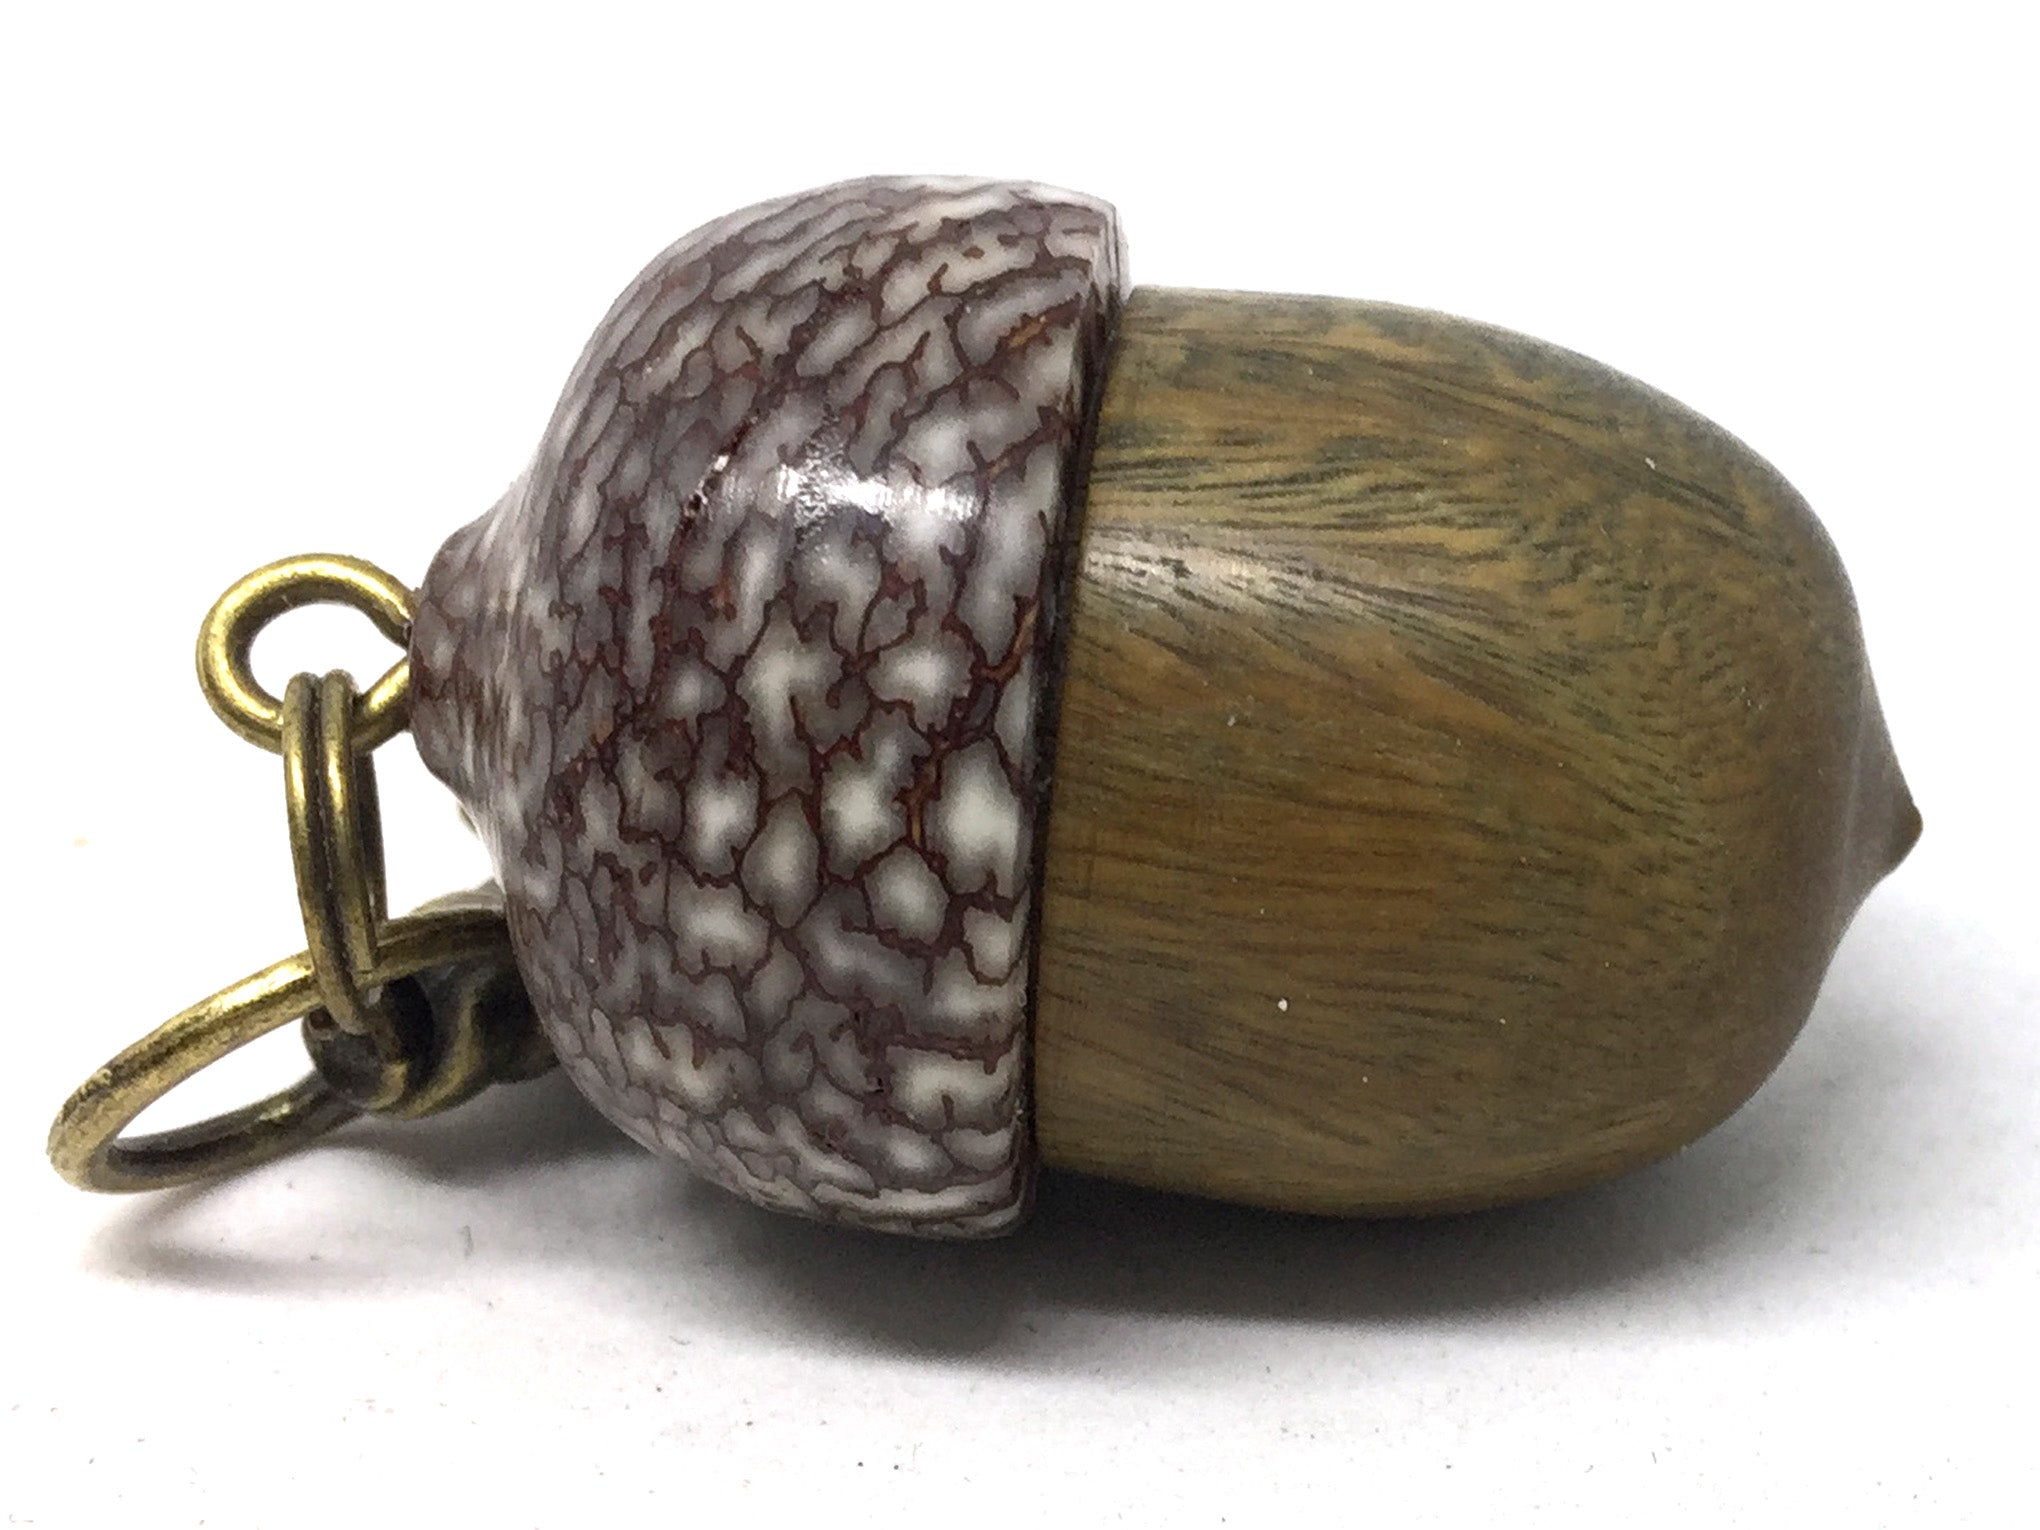 LV-5021 Verawood & Betelnut Acorn Pendant Box,Bag Charm, Keychain-SCREW CAP